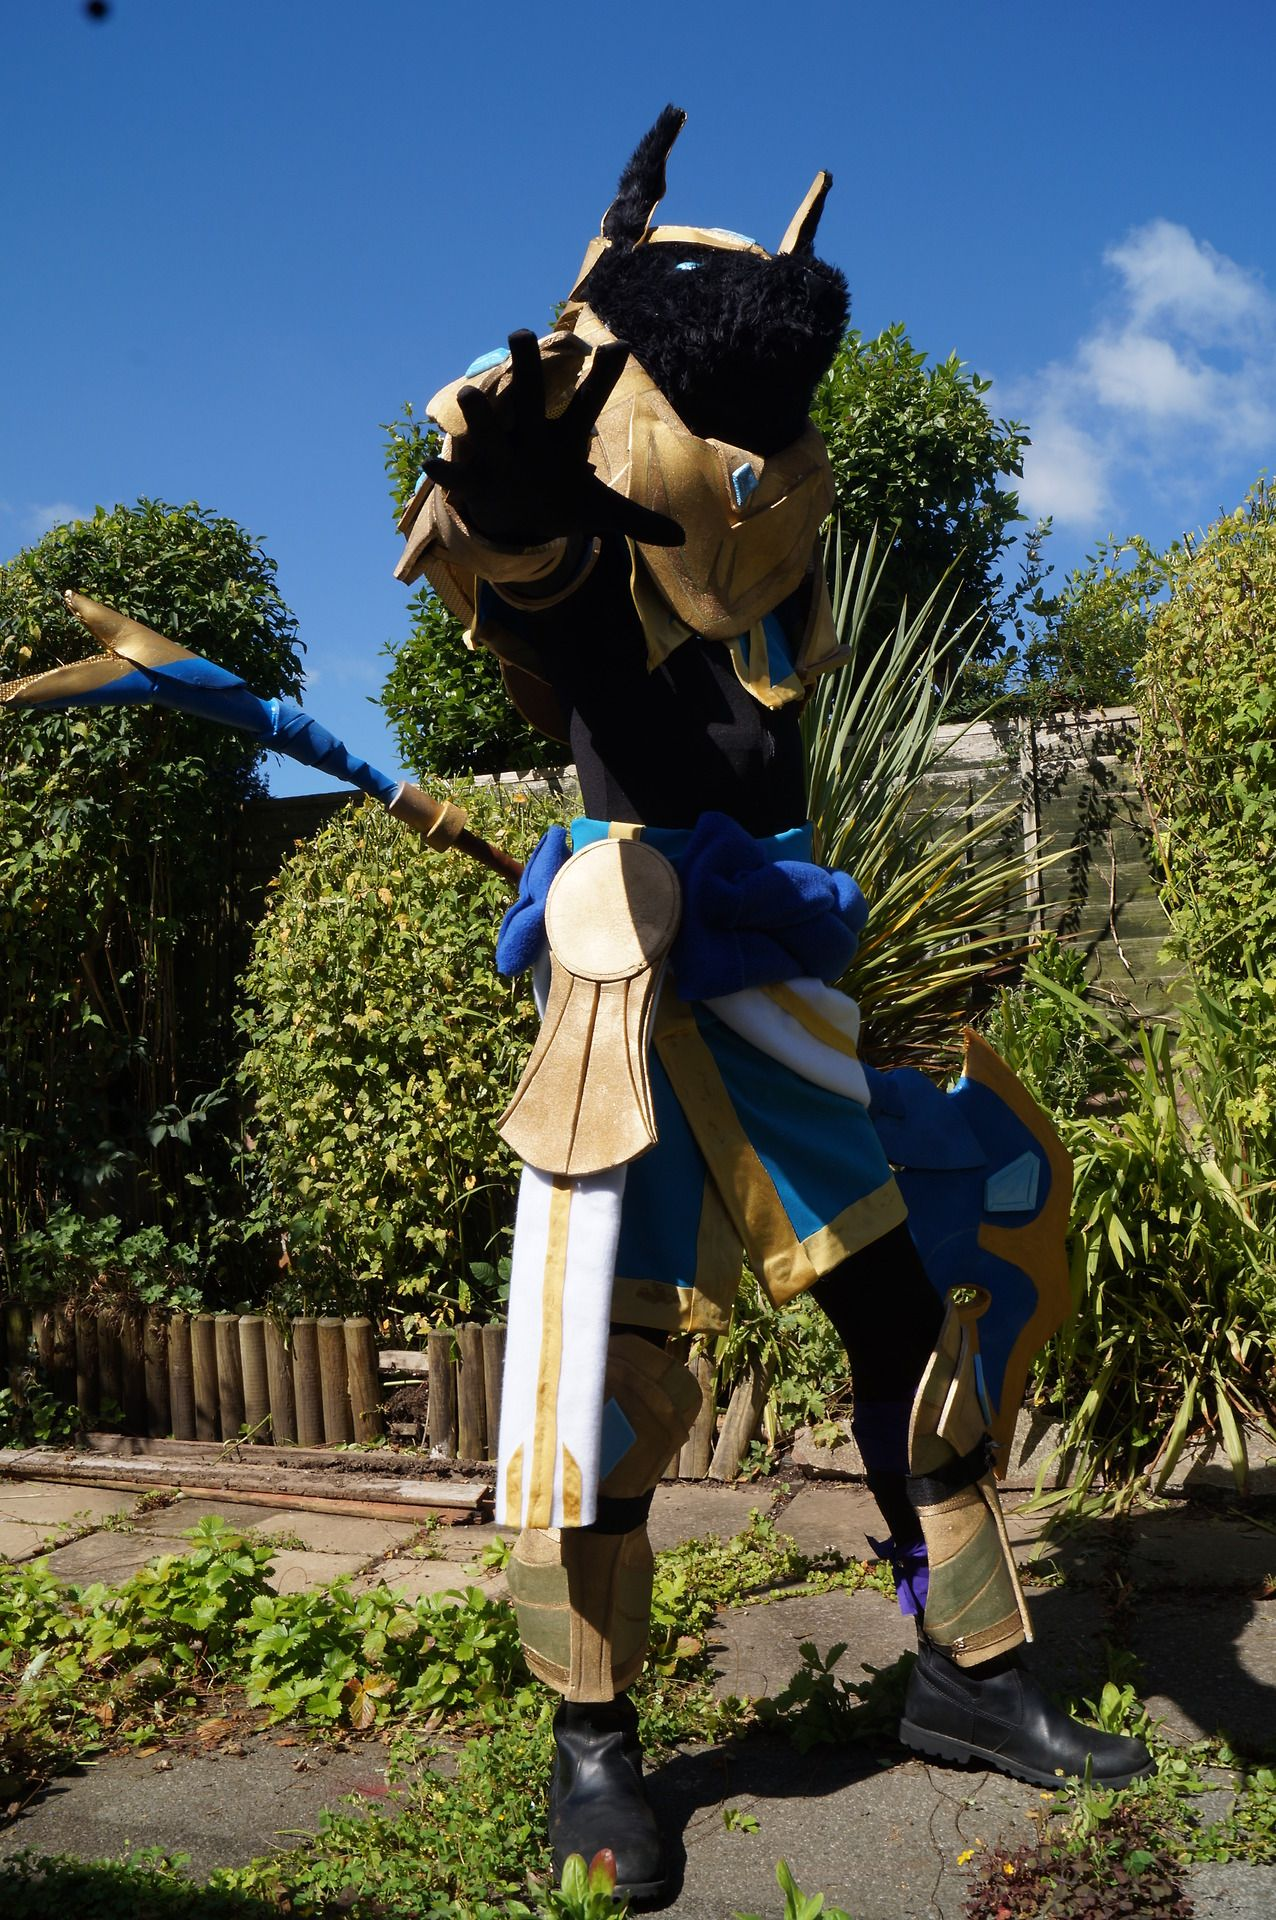 League of legends Nasus cosplay (costume) | Costume and Cosplays ...